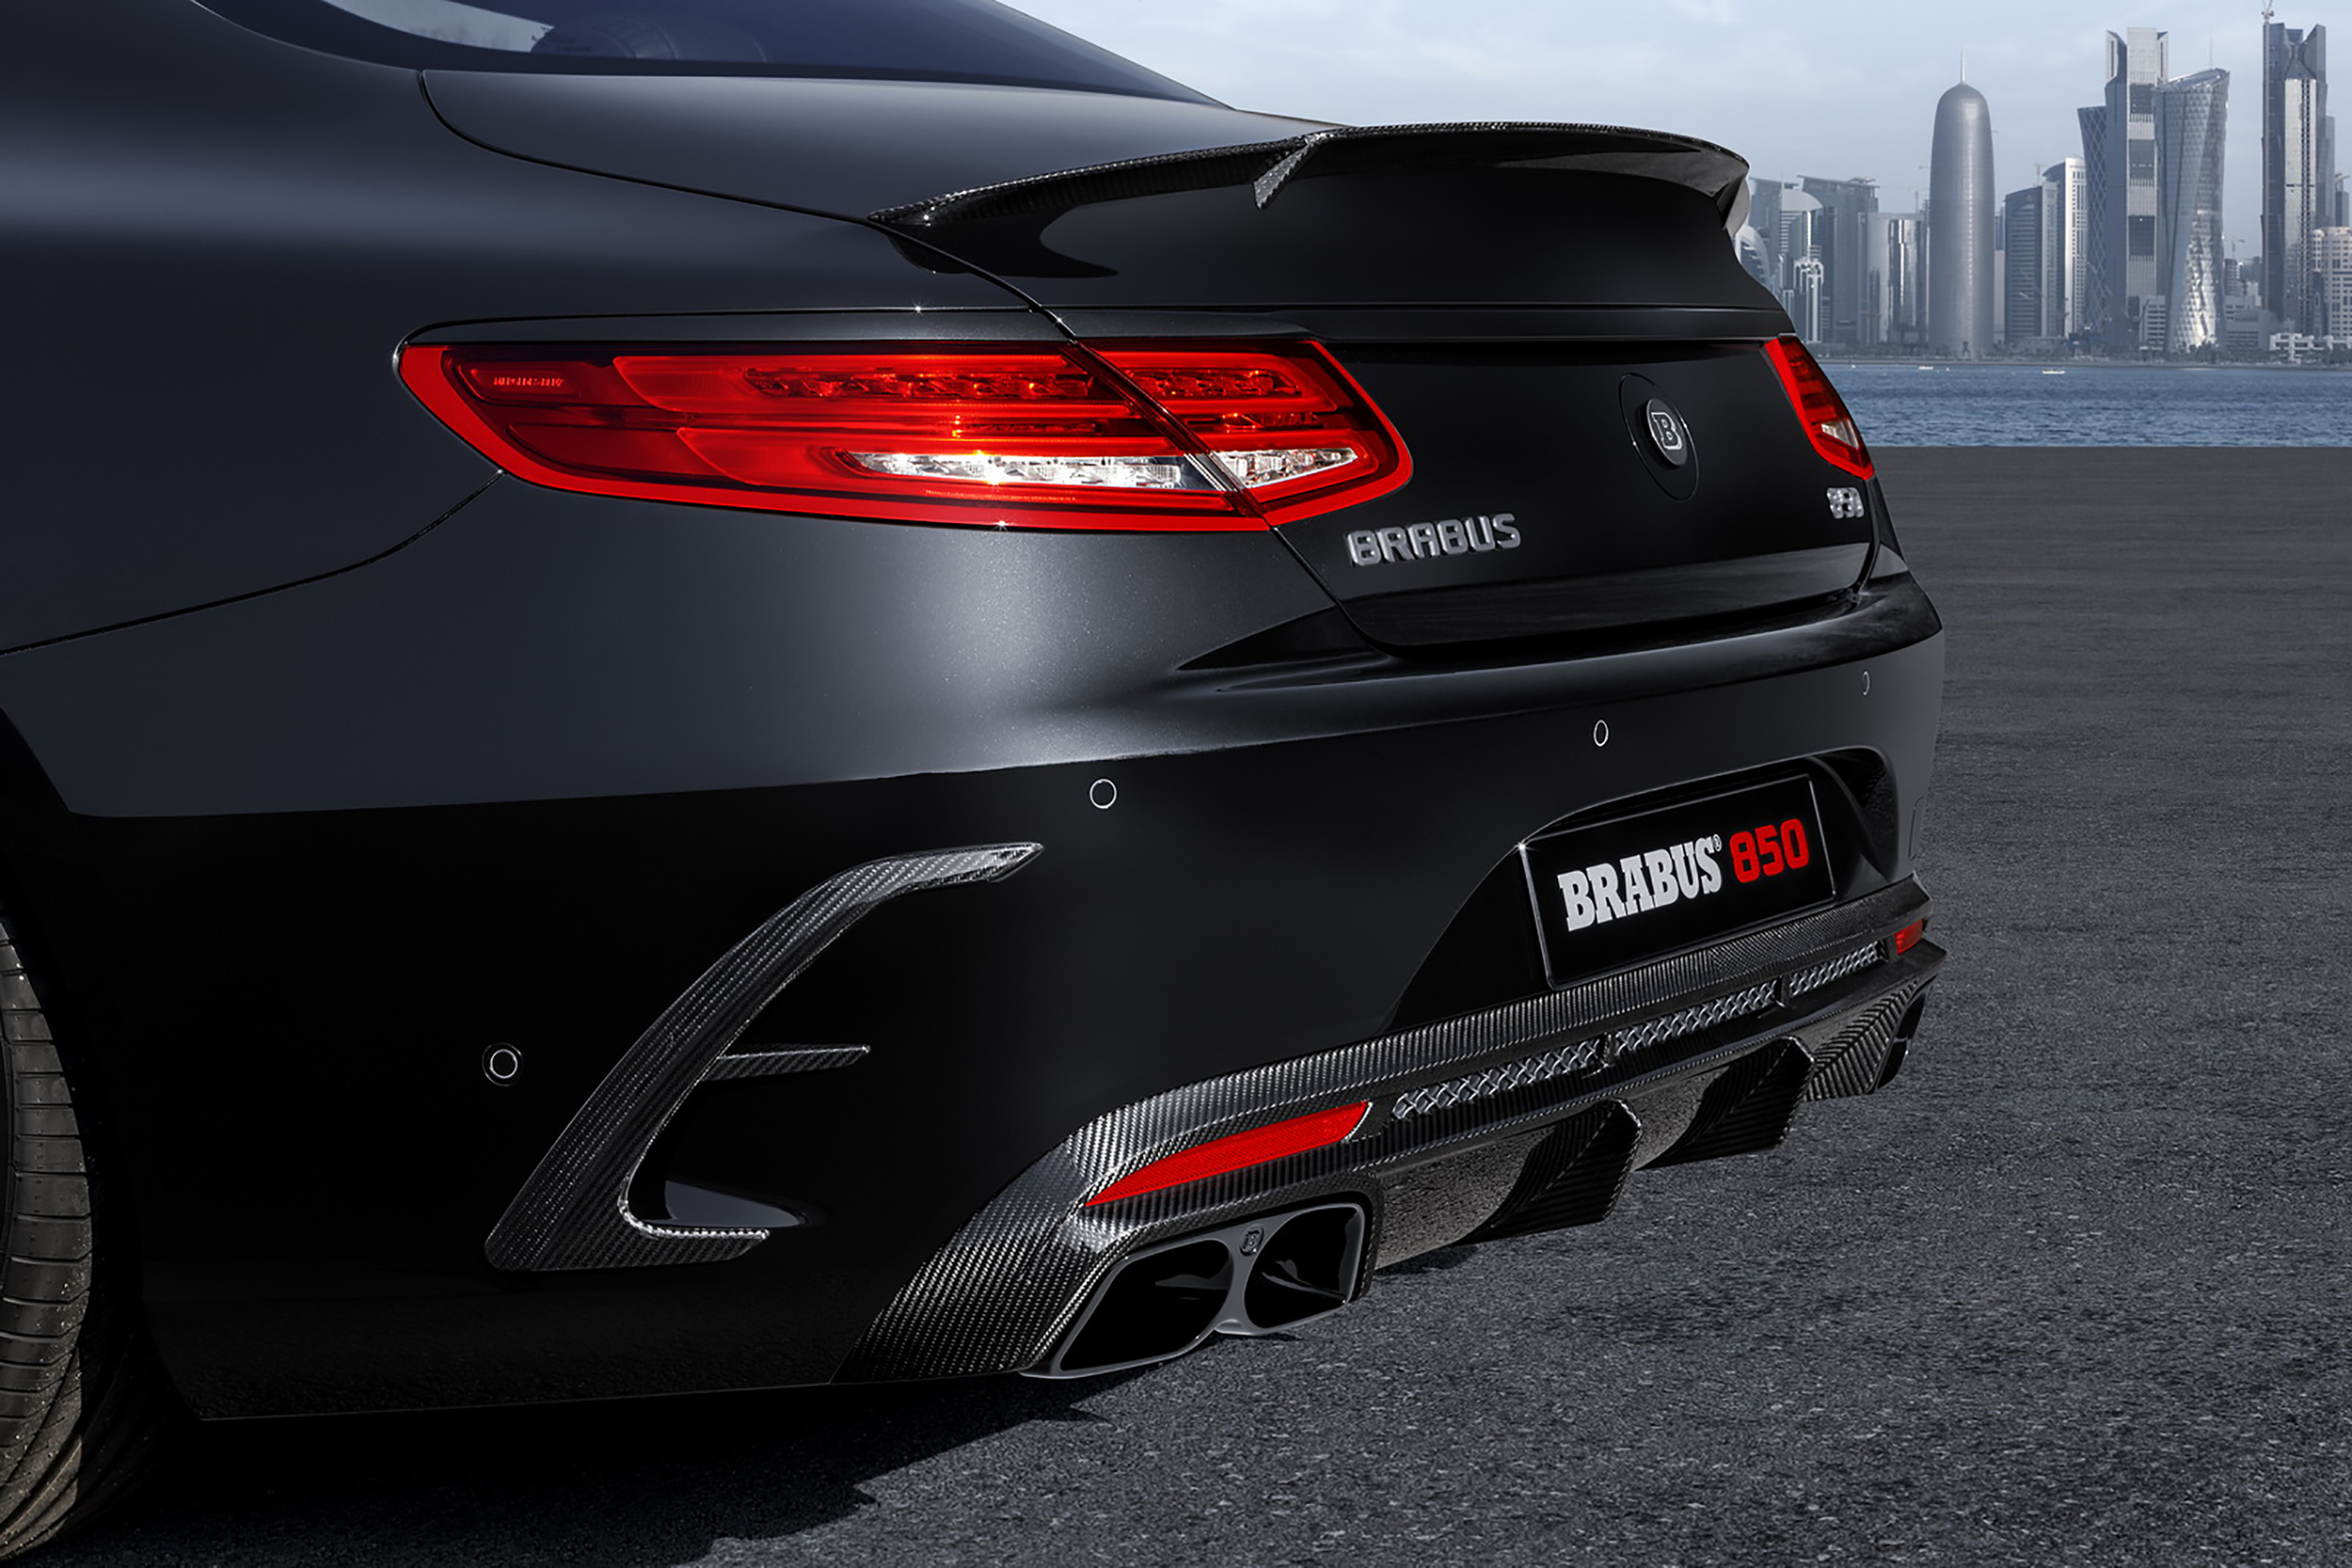 ' ' from the web at 'http://www.blogcdn.com/slideshows/images/slides/335/946/9/S3359469/slug/l/brabus-s-class-coupe-08-1.jpg'